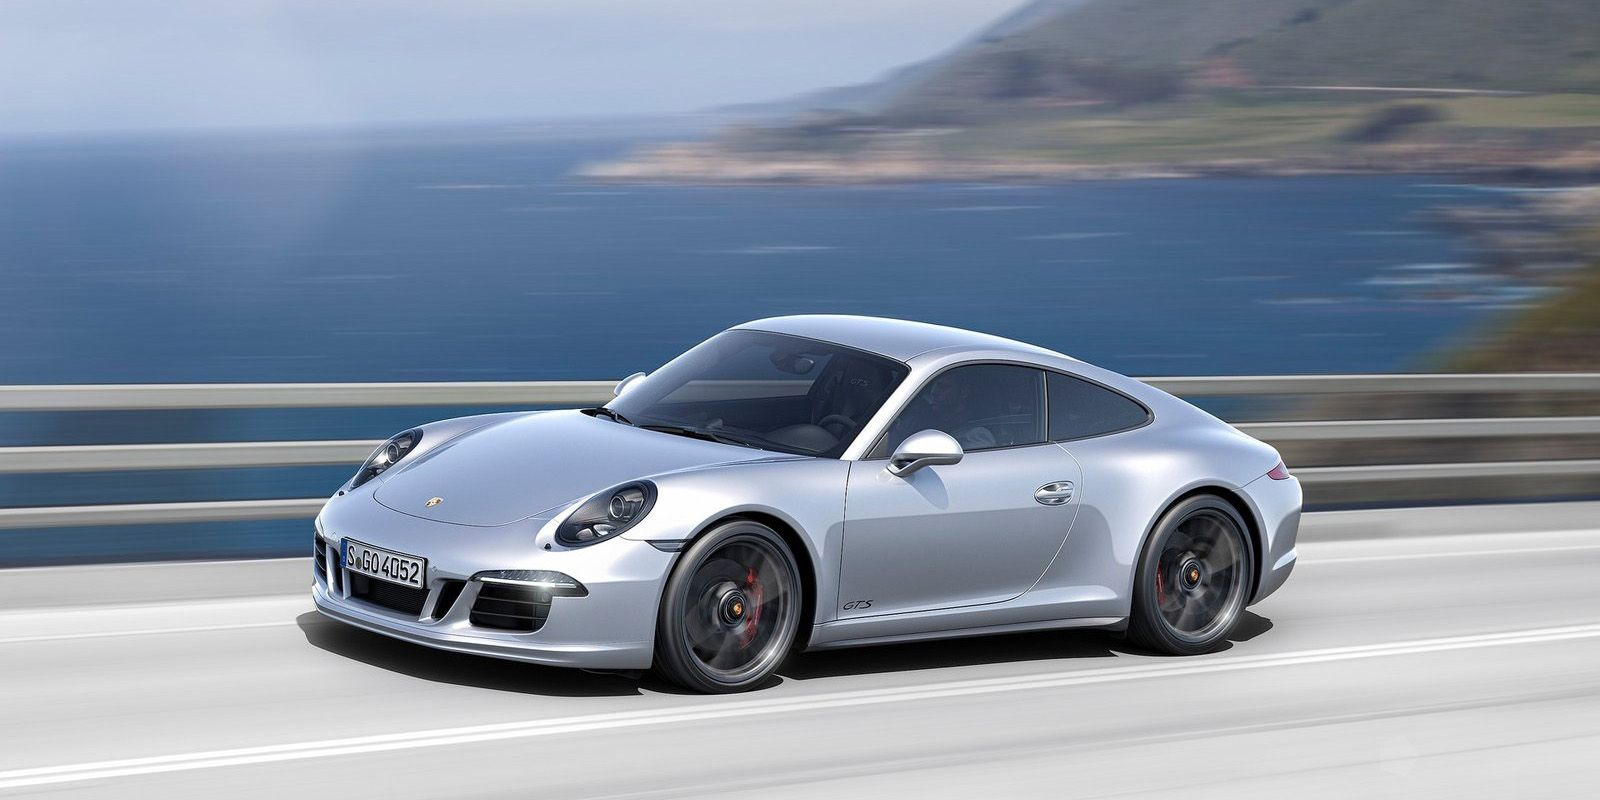 "<p>The 3.8-liter flat-six found in the back of the GTS squeezes out another 30 hp on top of what it churns out in the Carrera S, giving it a total of 430 hp. Meant to bridge the gap between the Carrera S and the GT3, <a href=""http://www.roadandtrack.com/new-cars/first-drives/reviews/a24610/first-drives-2015-porsche-911-gts/"">we found that</a> it definitely hits that mark. You get the extra power and the high-revving responsiveness of the GT3, but you're also paying way less for it. Sounds like the perfect 911.</p>"